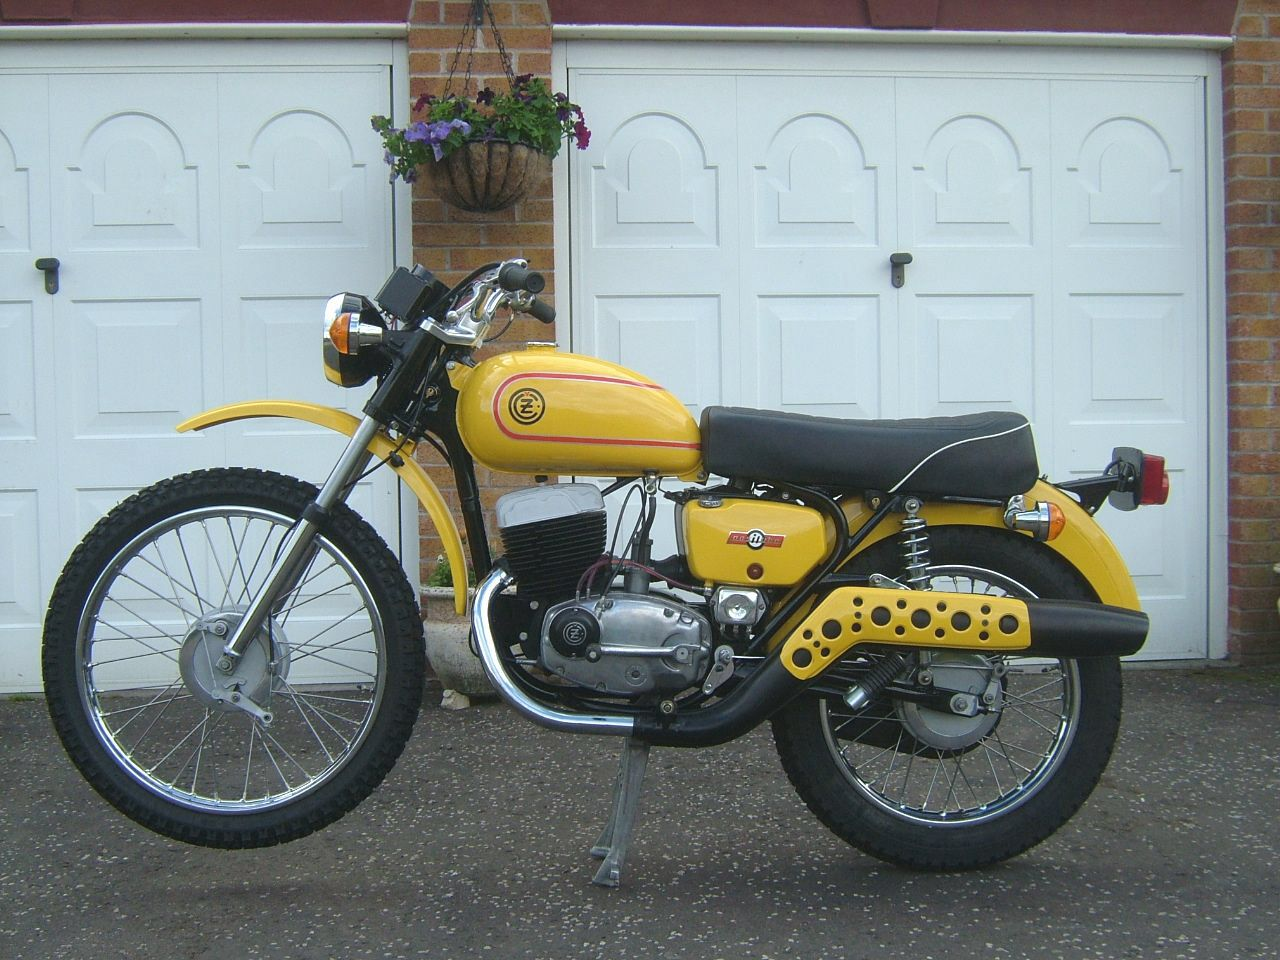 1977 Cz 175 Trail Motorcycle Old Bikes Classic Bikes